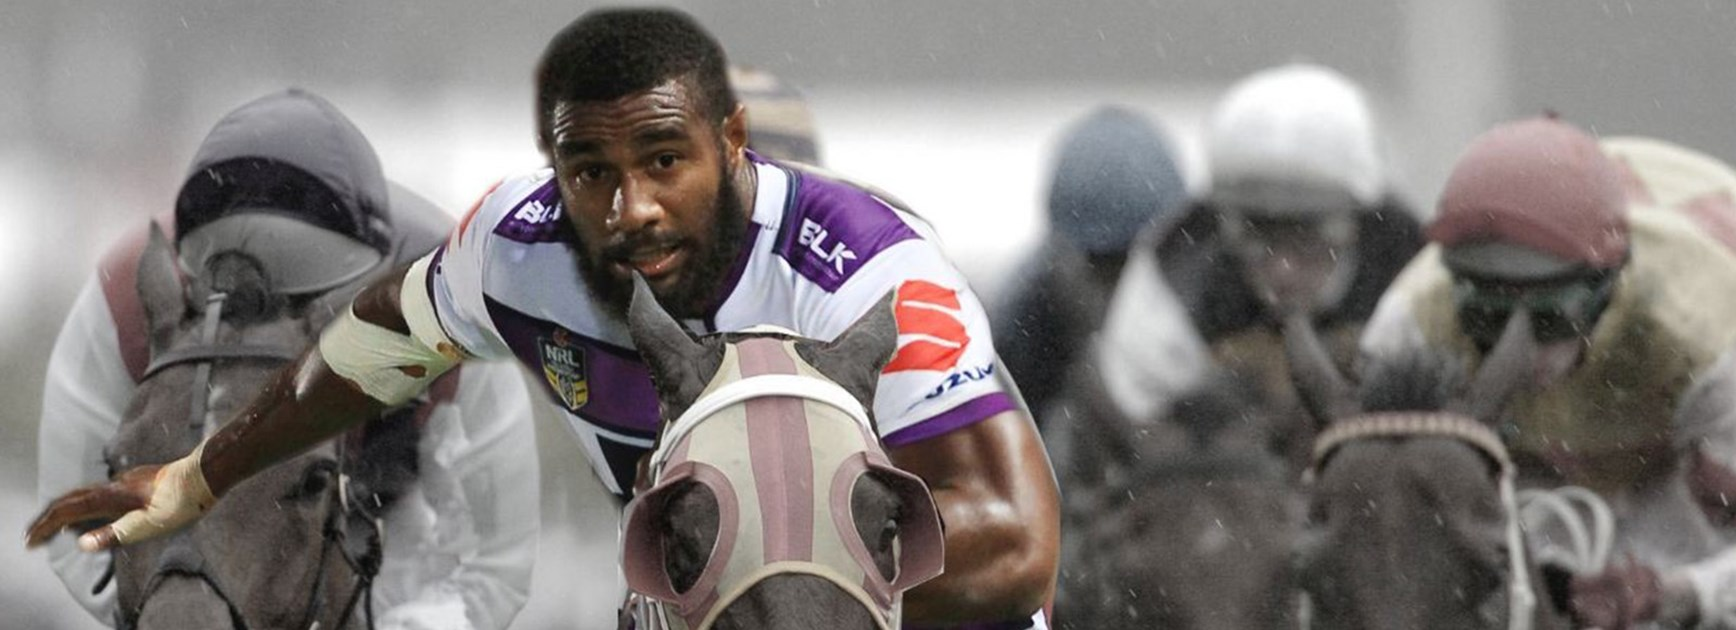 NRL players have their say on who will win the Melbourne Cup.